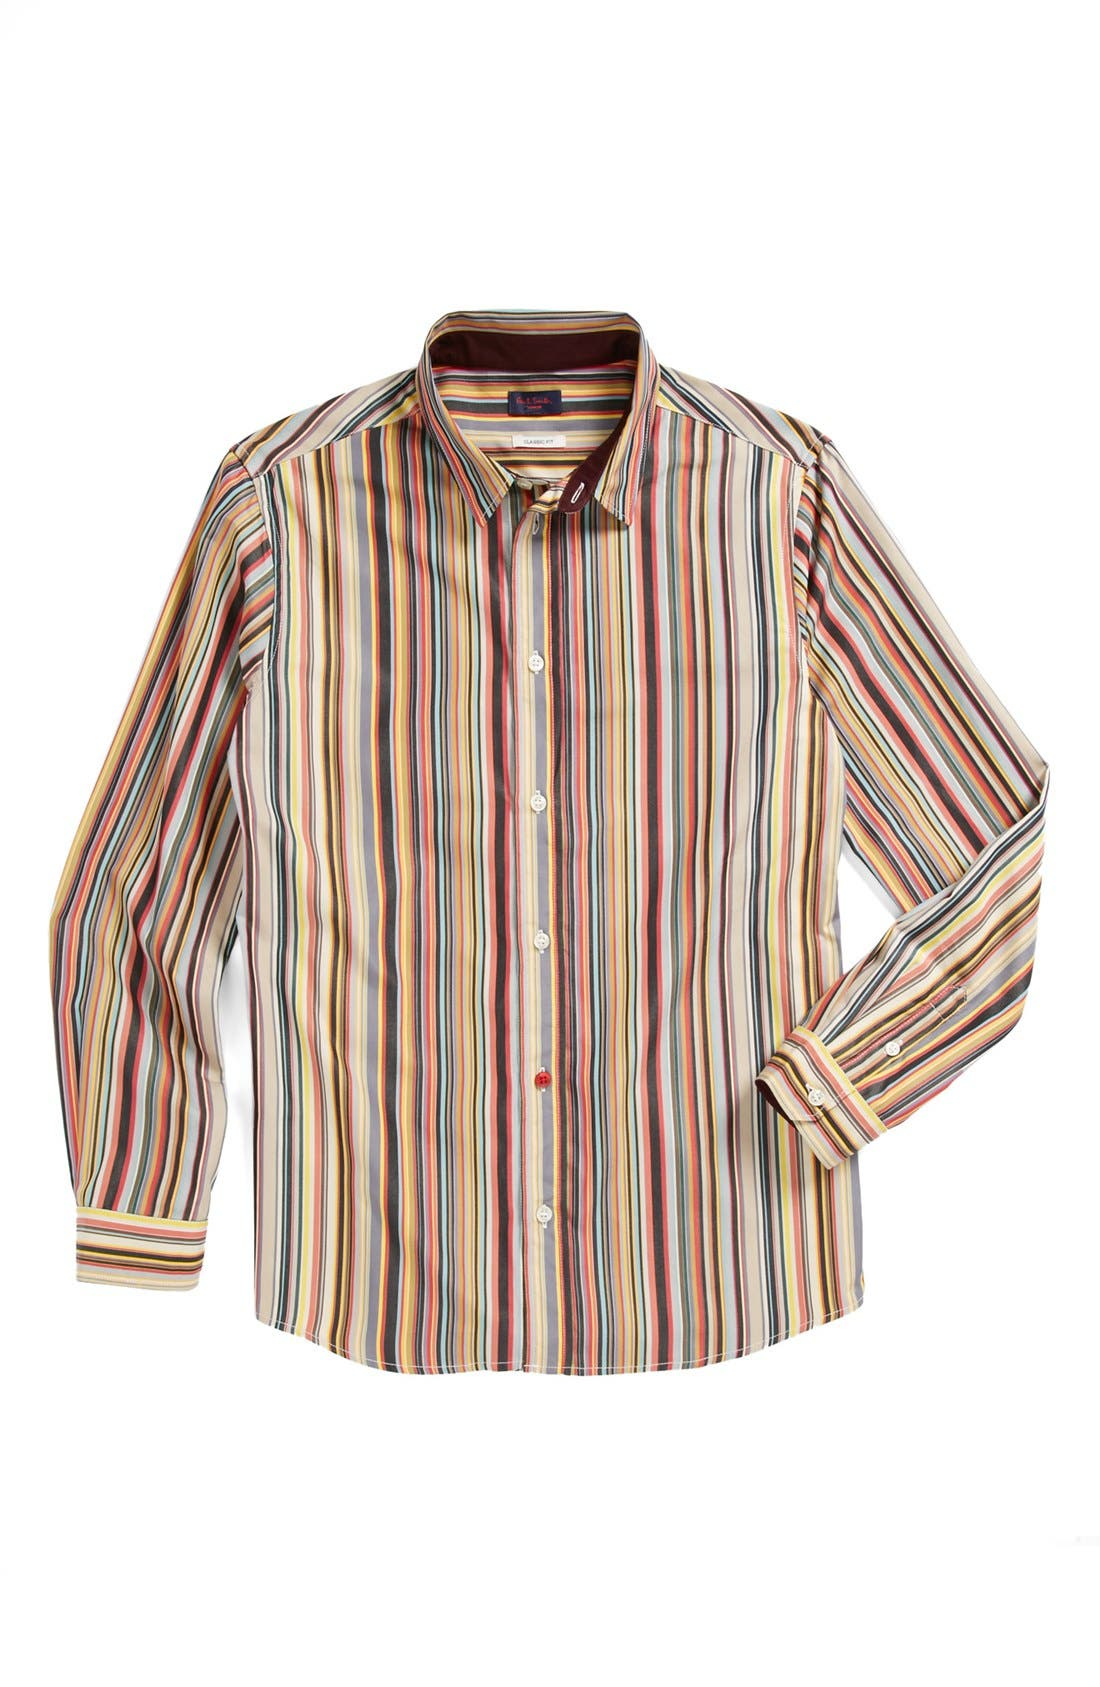 Alternate Image 1 Selected - Paul Smith Junior 'Elrick' Stripe Sport Shirt (Toddler Boys, Little Boys & Big Boys)